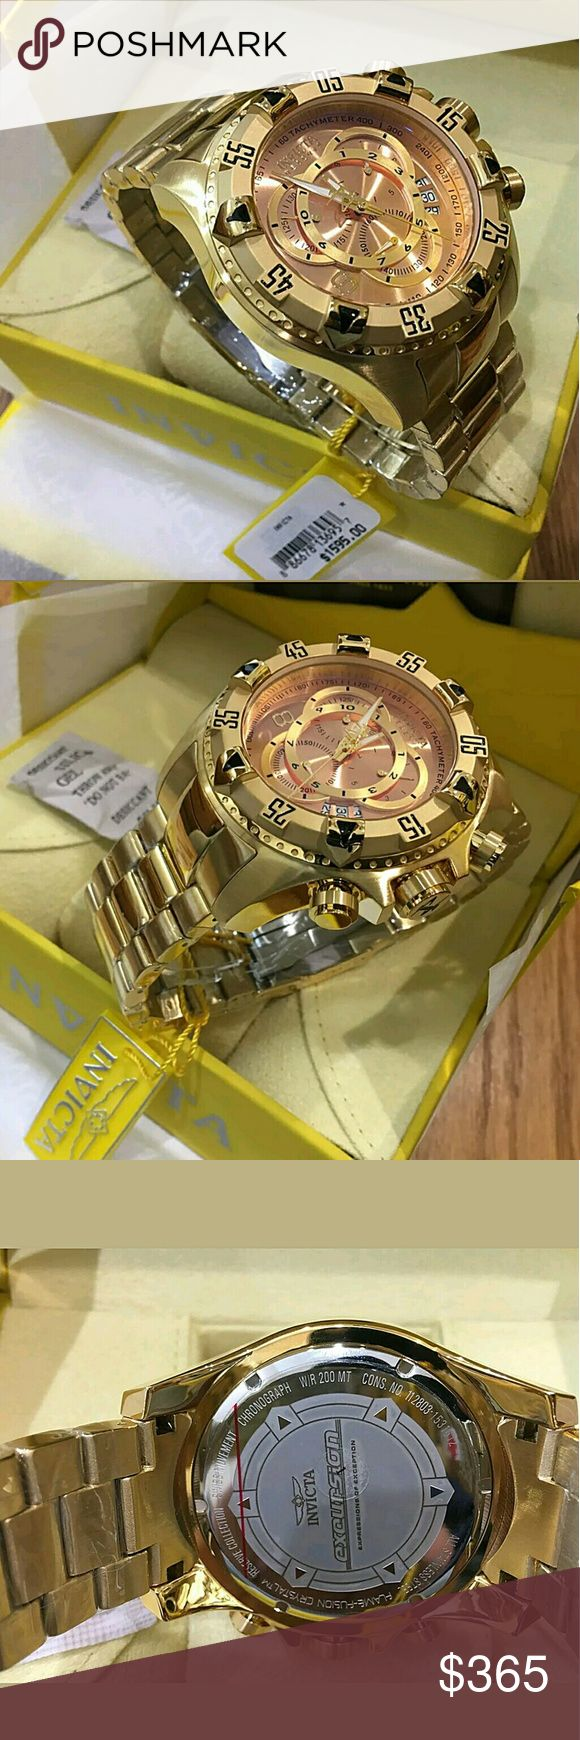 NWT $1,600 Men's Reserve Swiss Chronograph watch Brand new $1,600 Invicta Men's Reserve TOURING Swiss made Chronograph Rose Dial 18KT Gold Plated Stainless Steel Bracelet Watch.   FIRM PRICE FIRM PRICE FIRM PRICE FIRM PRICE  399.00 . AUTHENTIC WATCH  . AUTHENTIC BOX  . AUTHENTIC MANUAL    SHIPPING PLEASE ALLOW FEW BUSINESS DAYS FOR ME TO SHIPPED IT OFF.I HAVE TO GET IT FROM MY STORE.   THANK YOU FOR YOUR UNDERSTANDING. Invicta  Accessories Watches